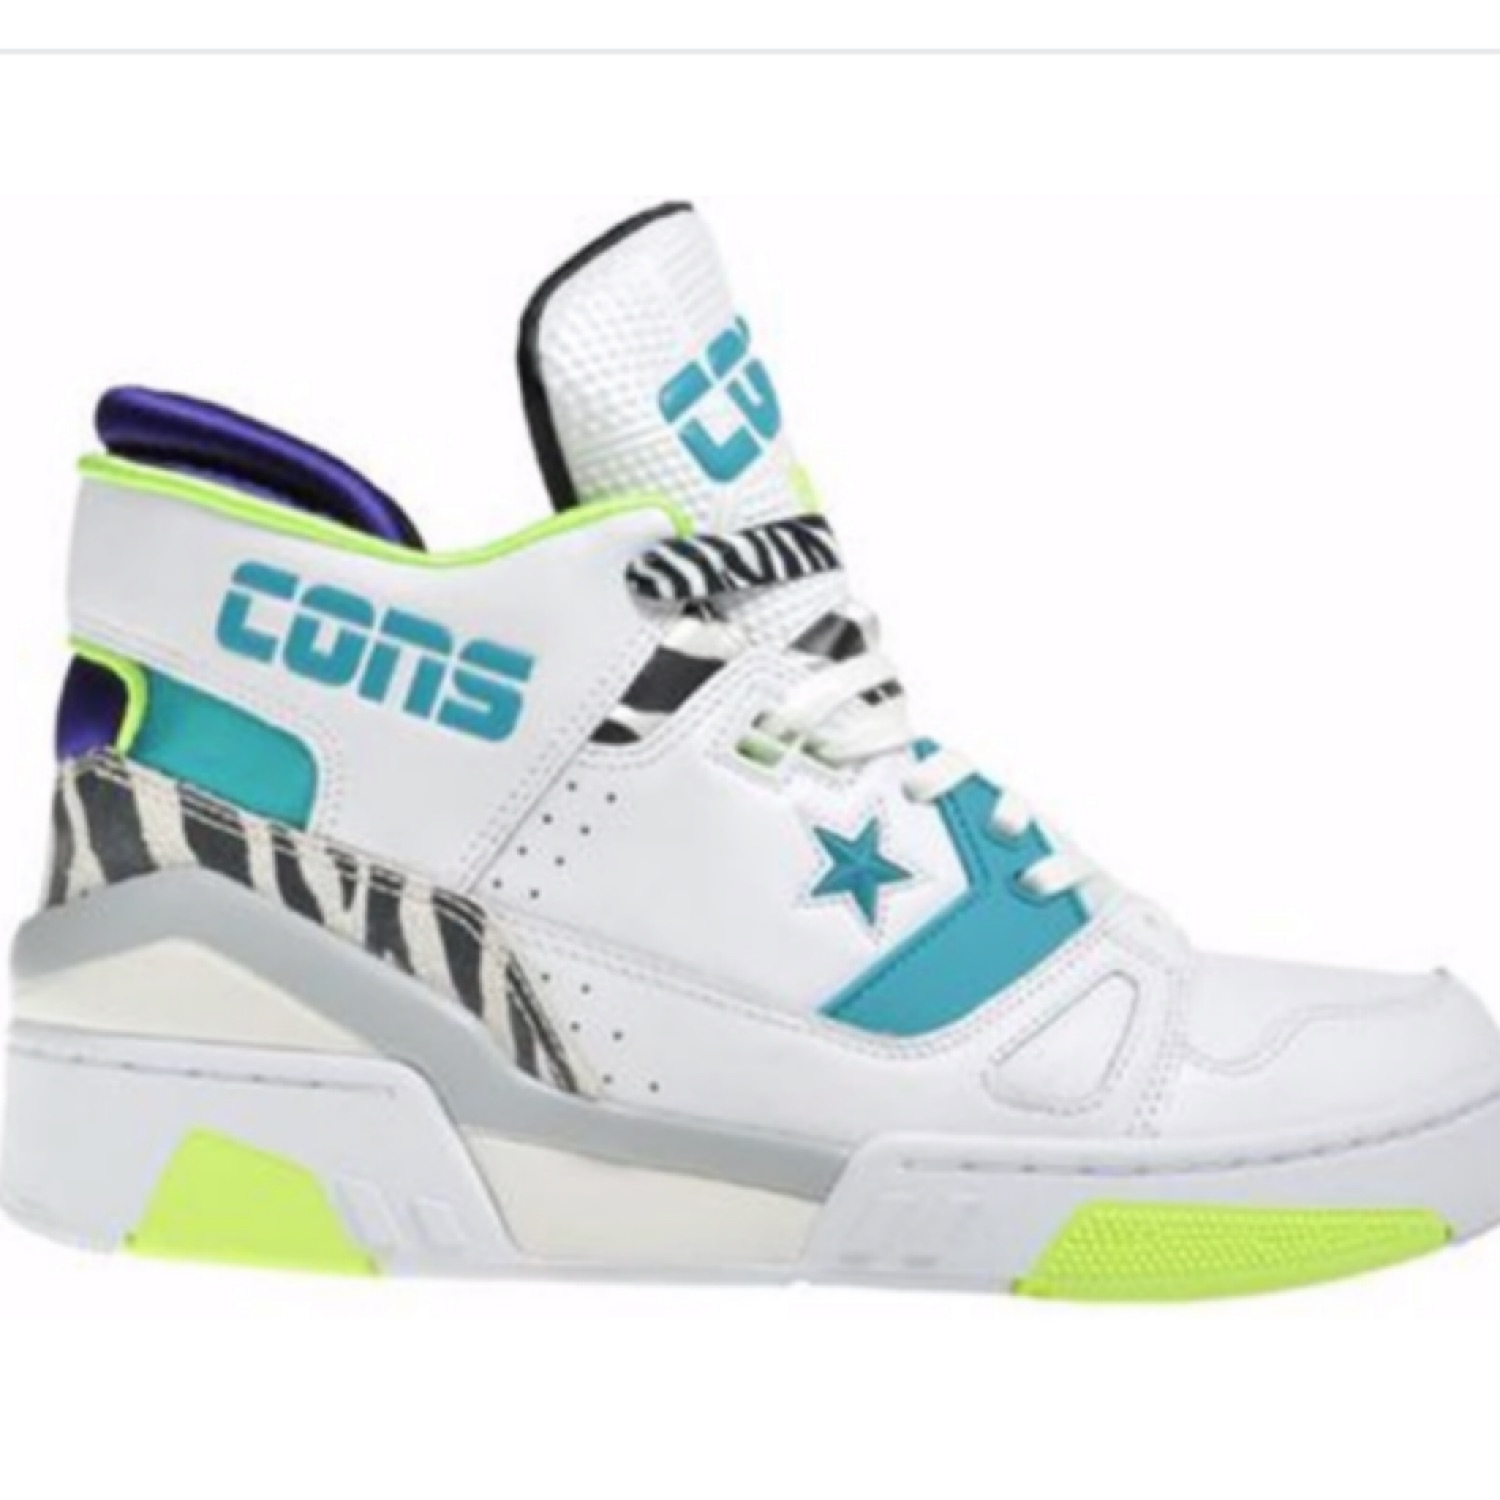 Converse Erx 260 Mid Just Don Animal Pack White